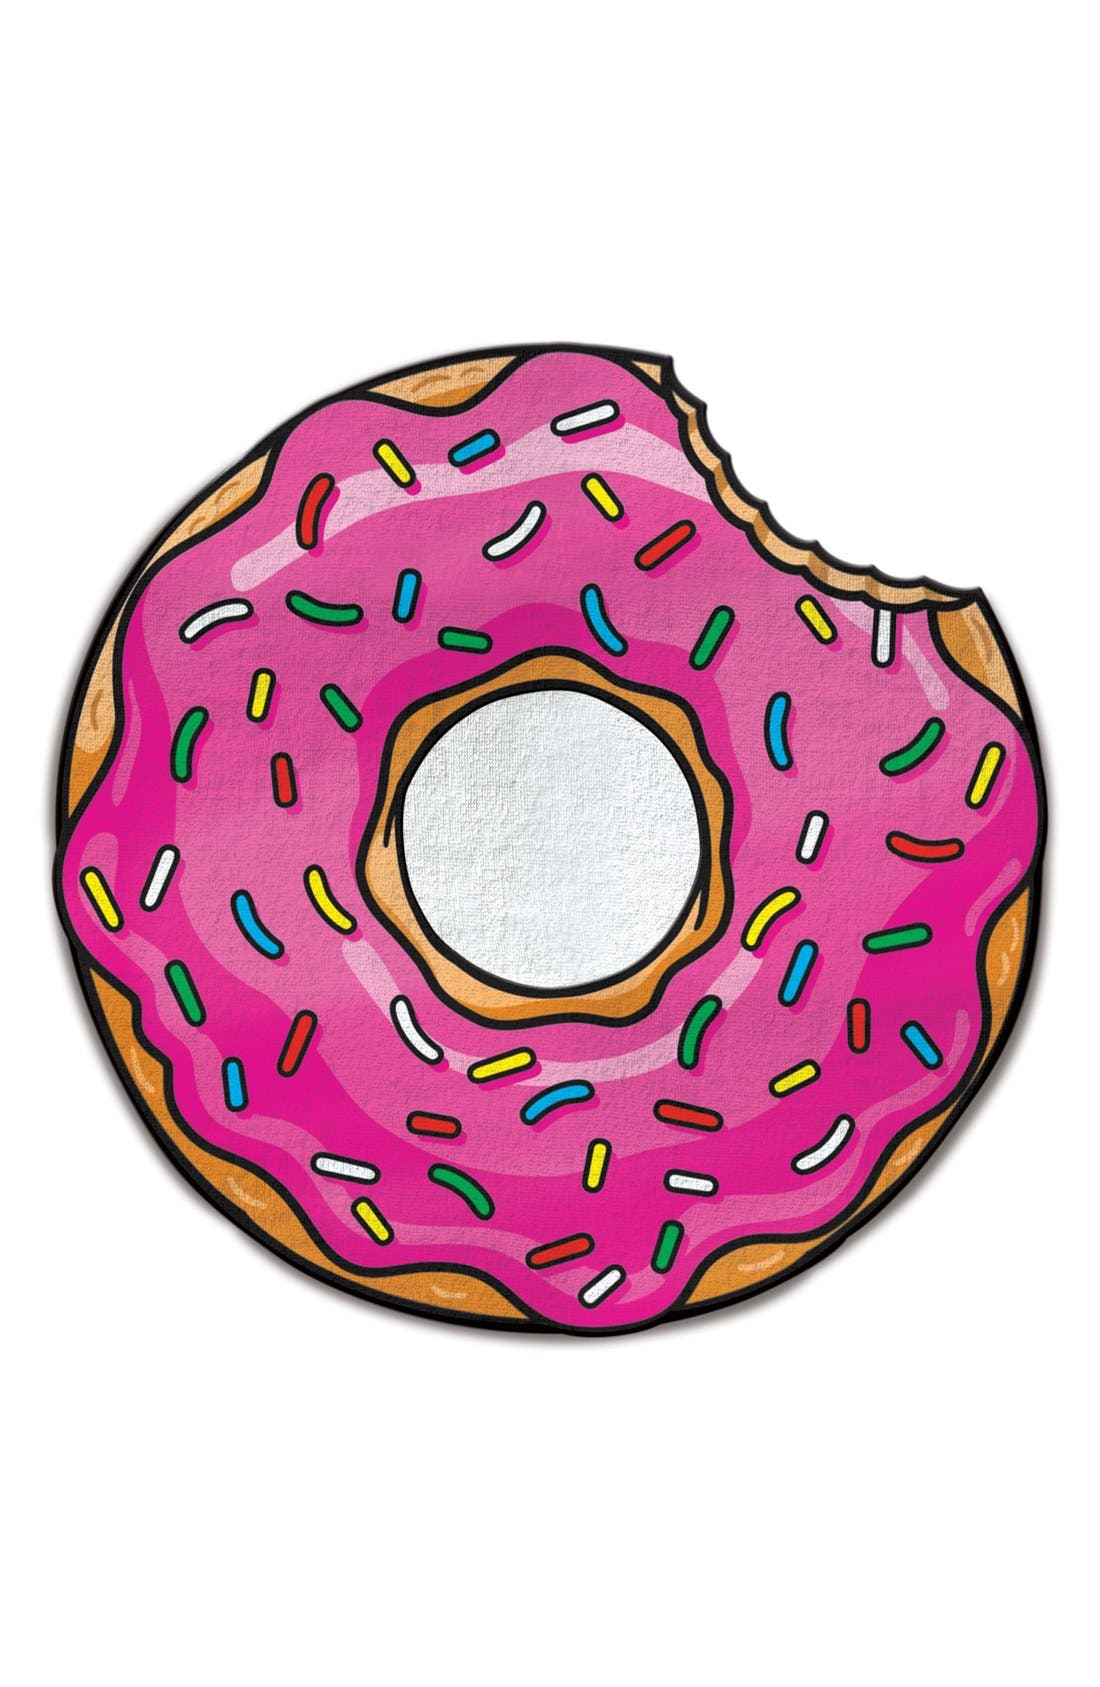 Alternate Image 1 Selected - BigMouth Inc. Donut Microfiber Beach Blanket